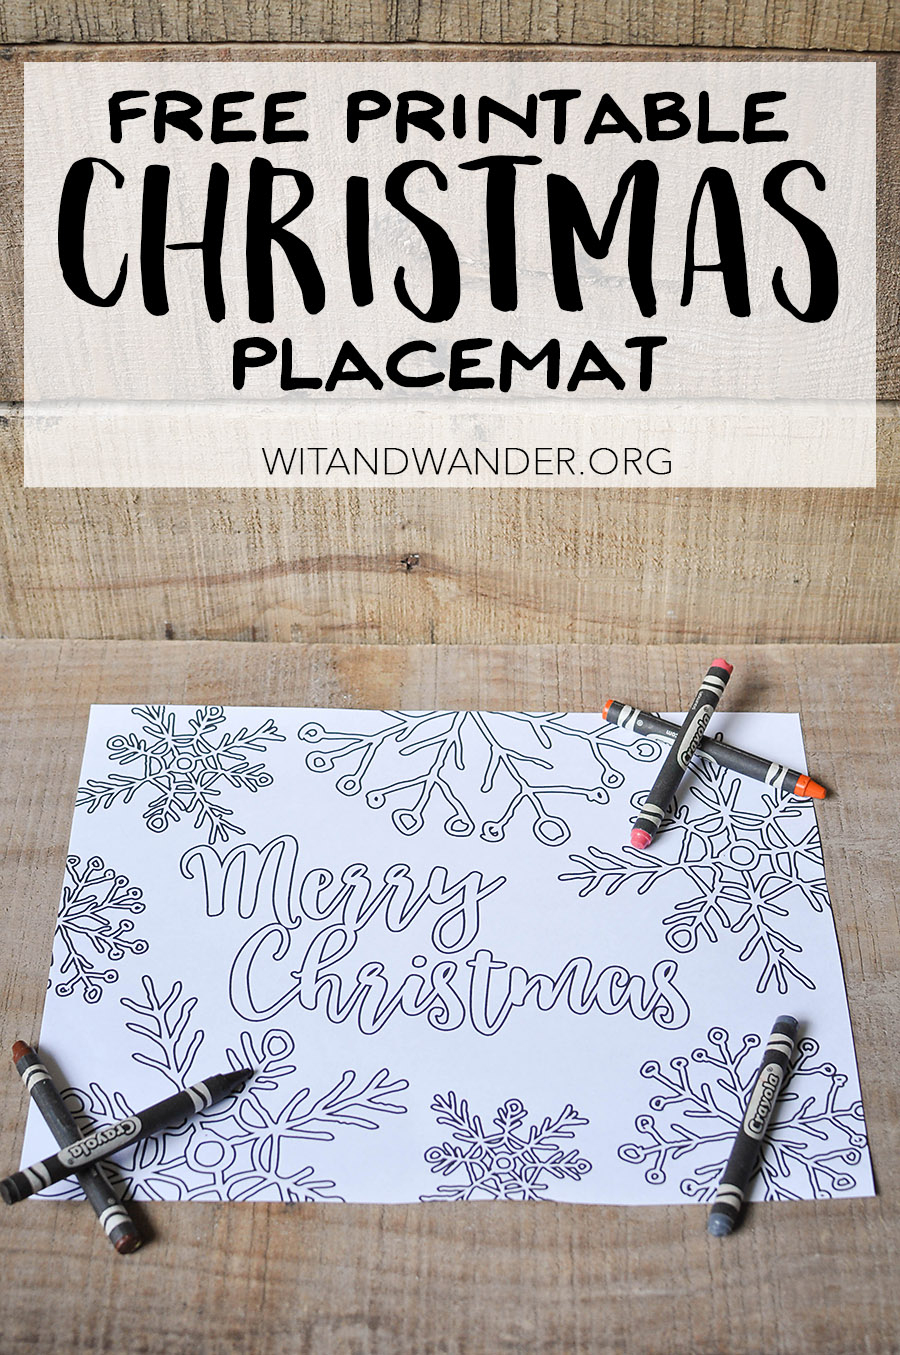 Free Printable Adult Coloring Page - Christmas Placemat - Our - Free Printable Christmas Placemats For Adults